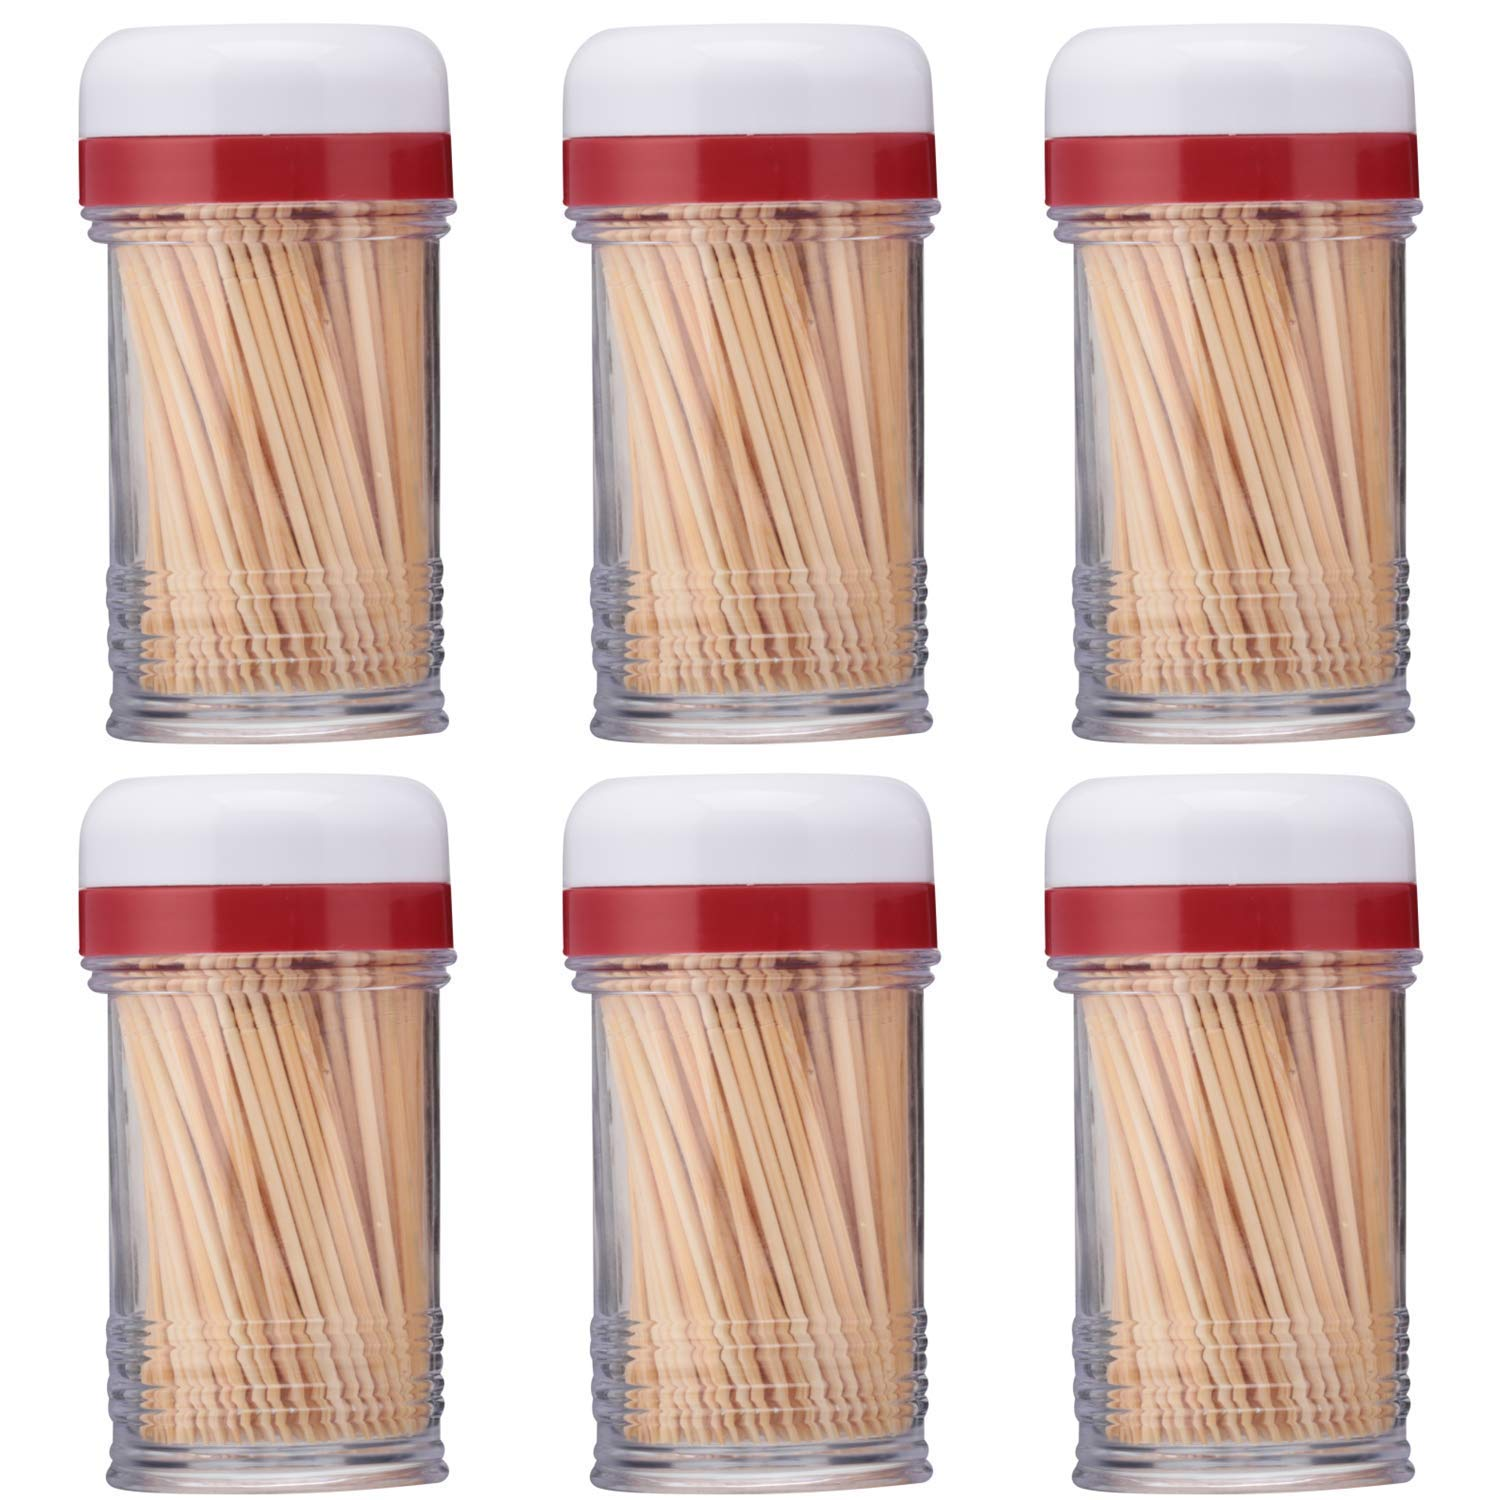 Good Cook Touch Shake-A-Pick Toothpick Dispenser (6-Pack) by Good Cook